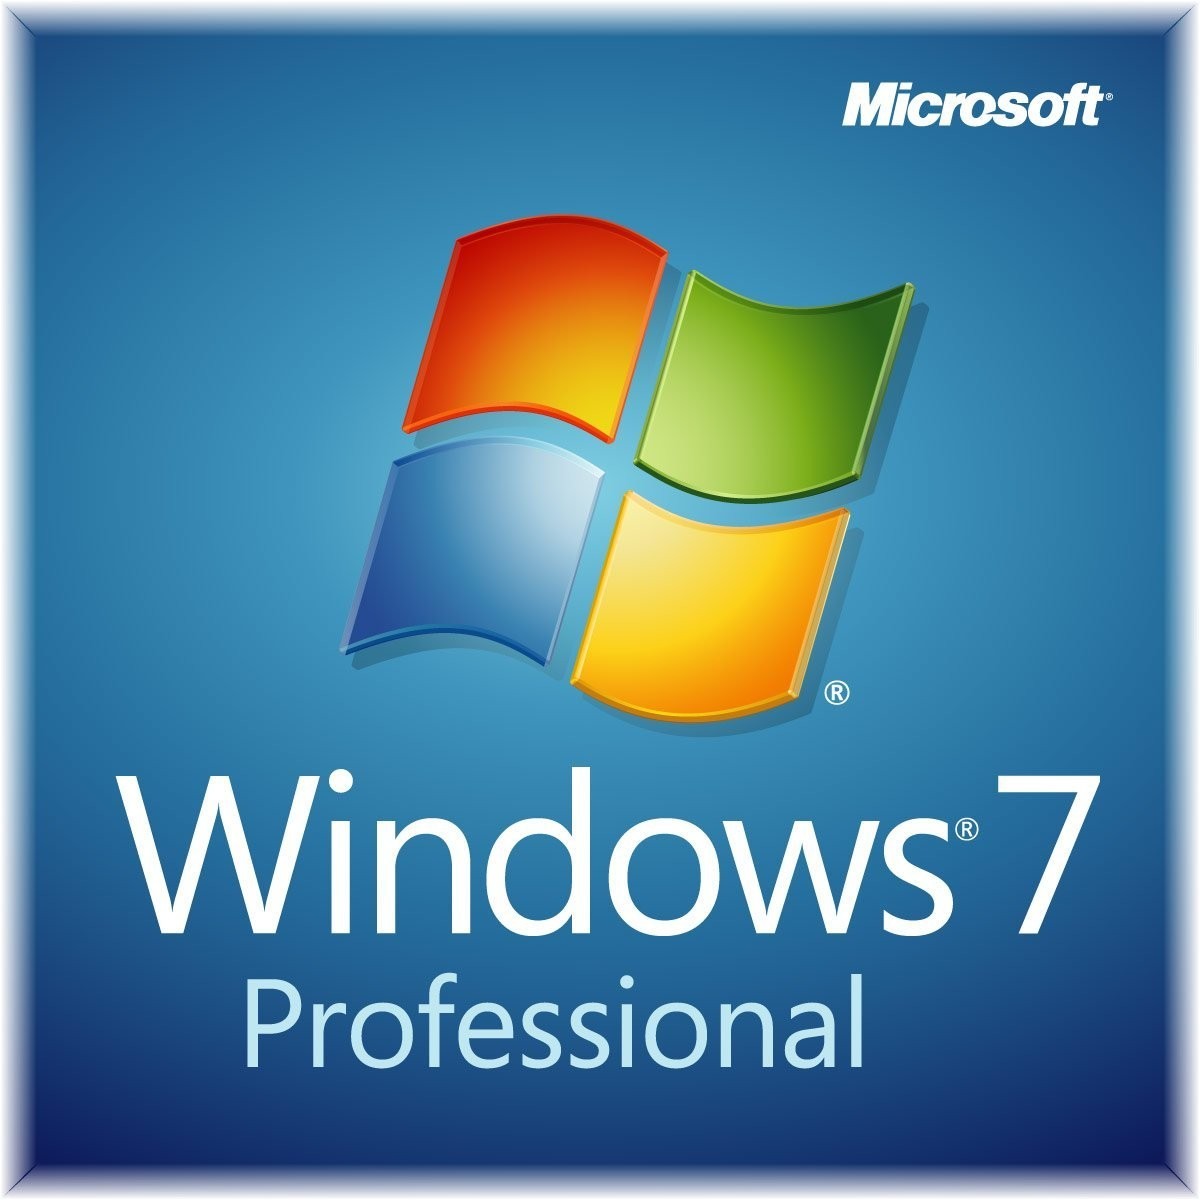 Microsoft Windows 7 Professional - 1 PC Download